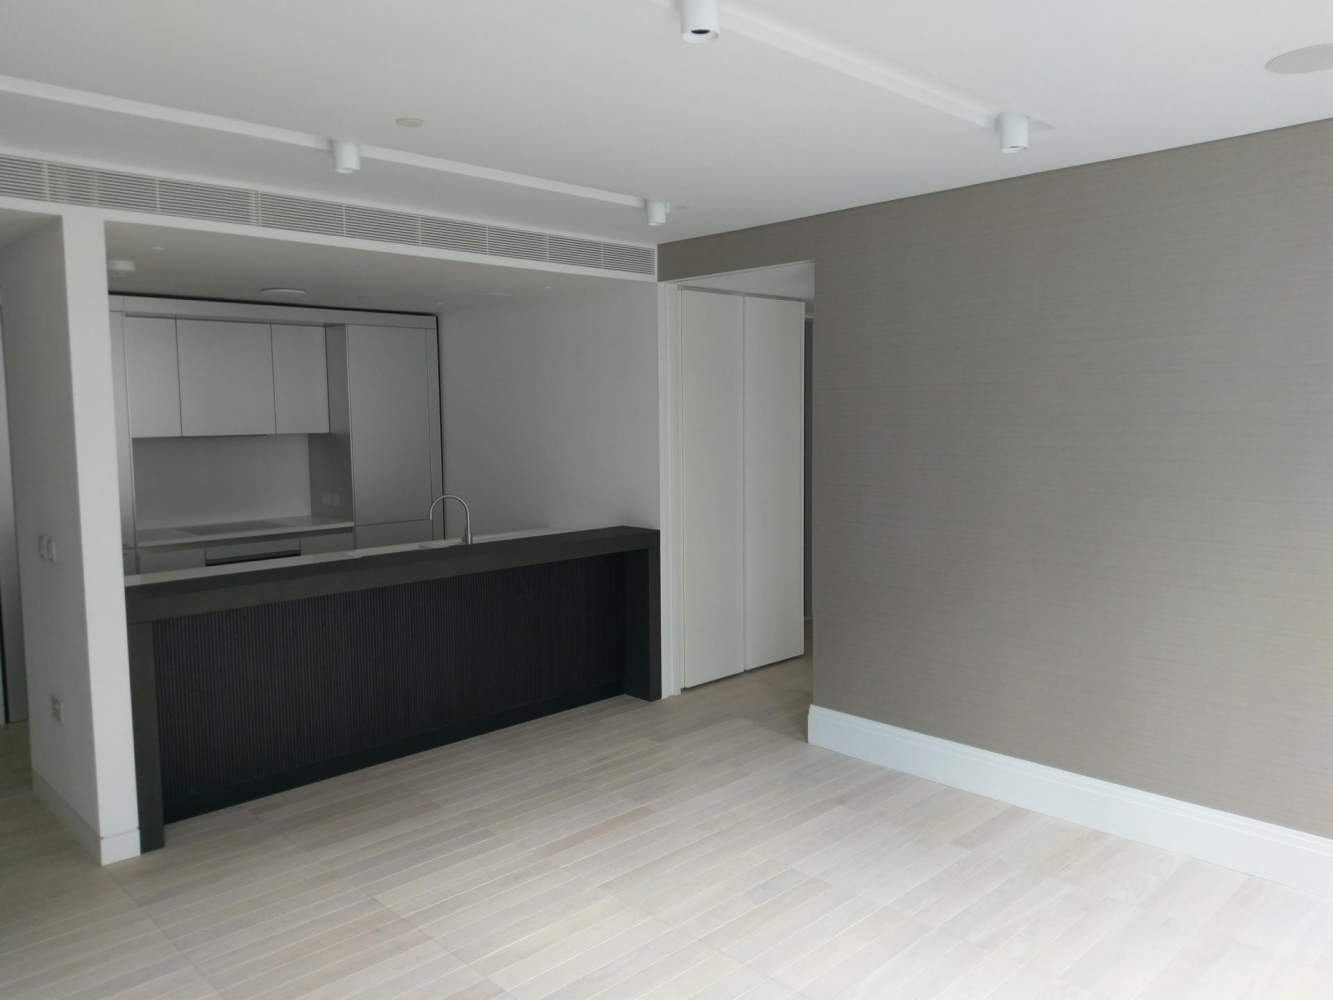 mayfair - 3  two bedroom flats  wallcovering /painting